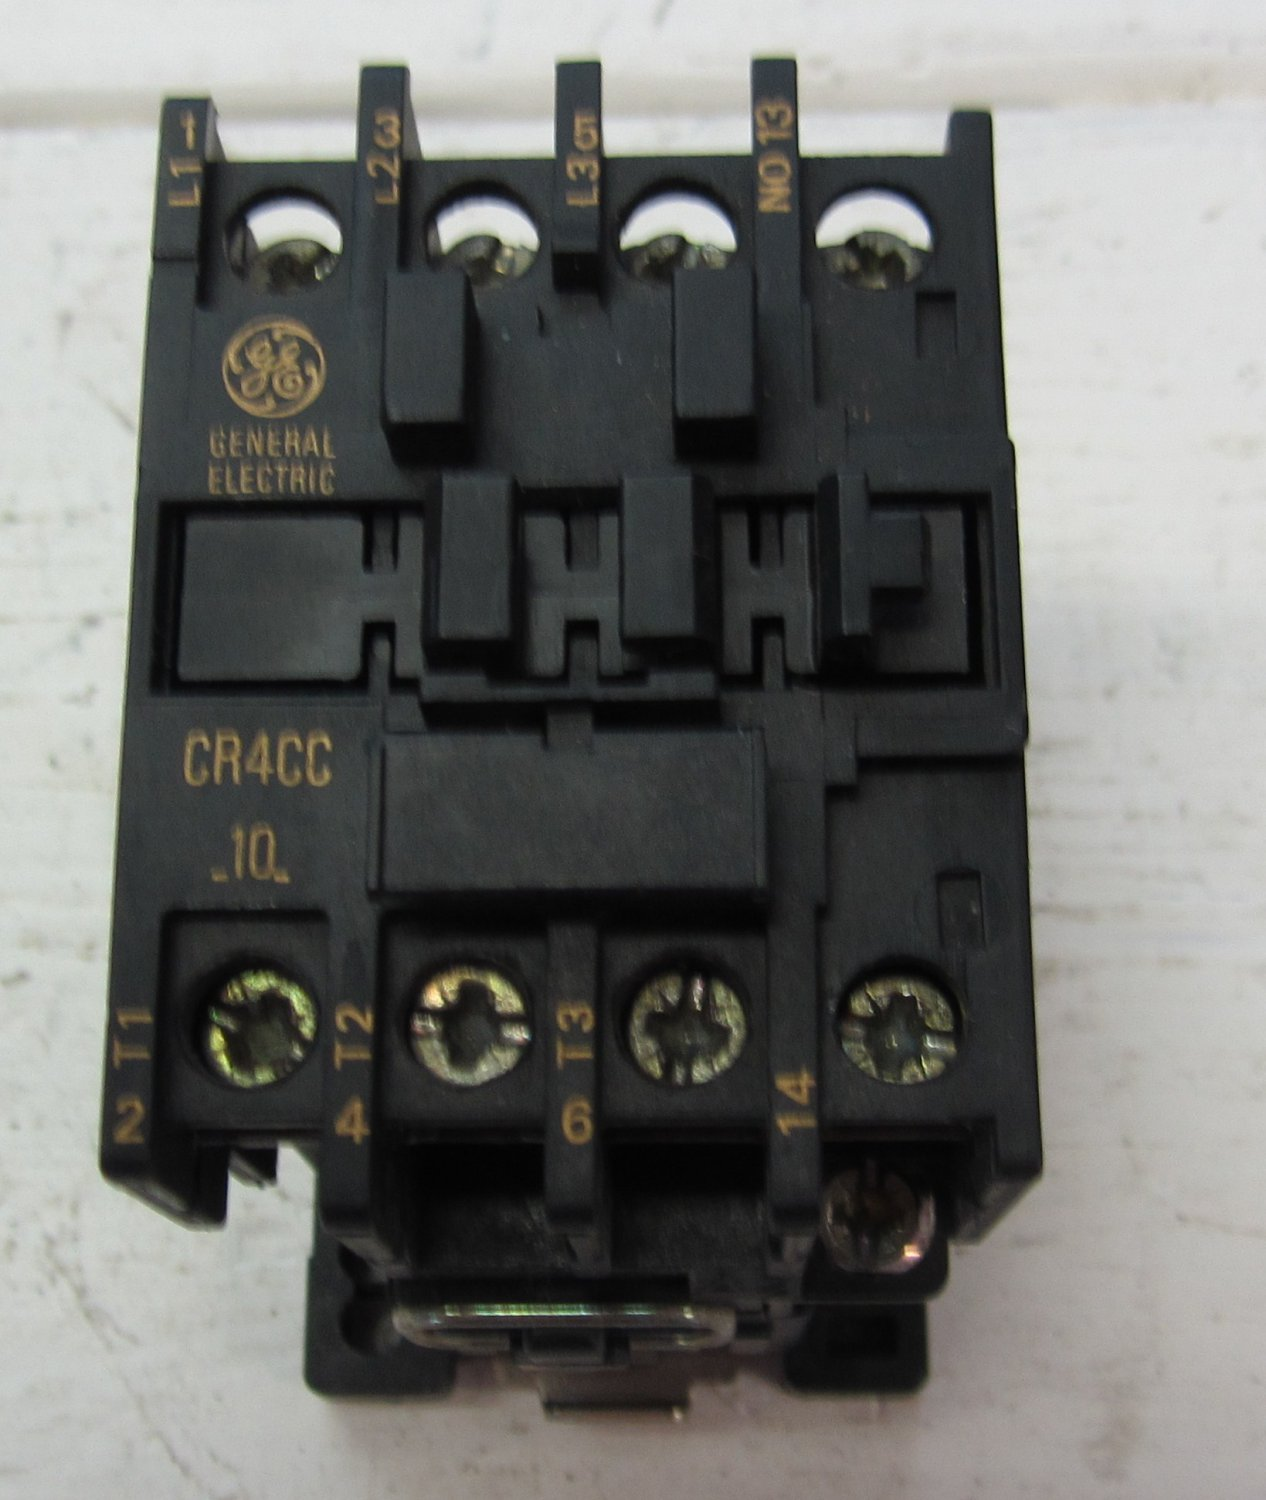 General electric cr4cc 10 cr4cc motor starter contactor for 120 volt ac motor